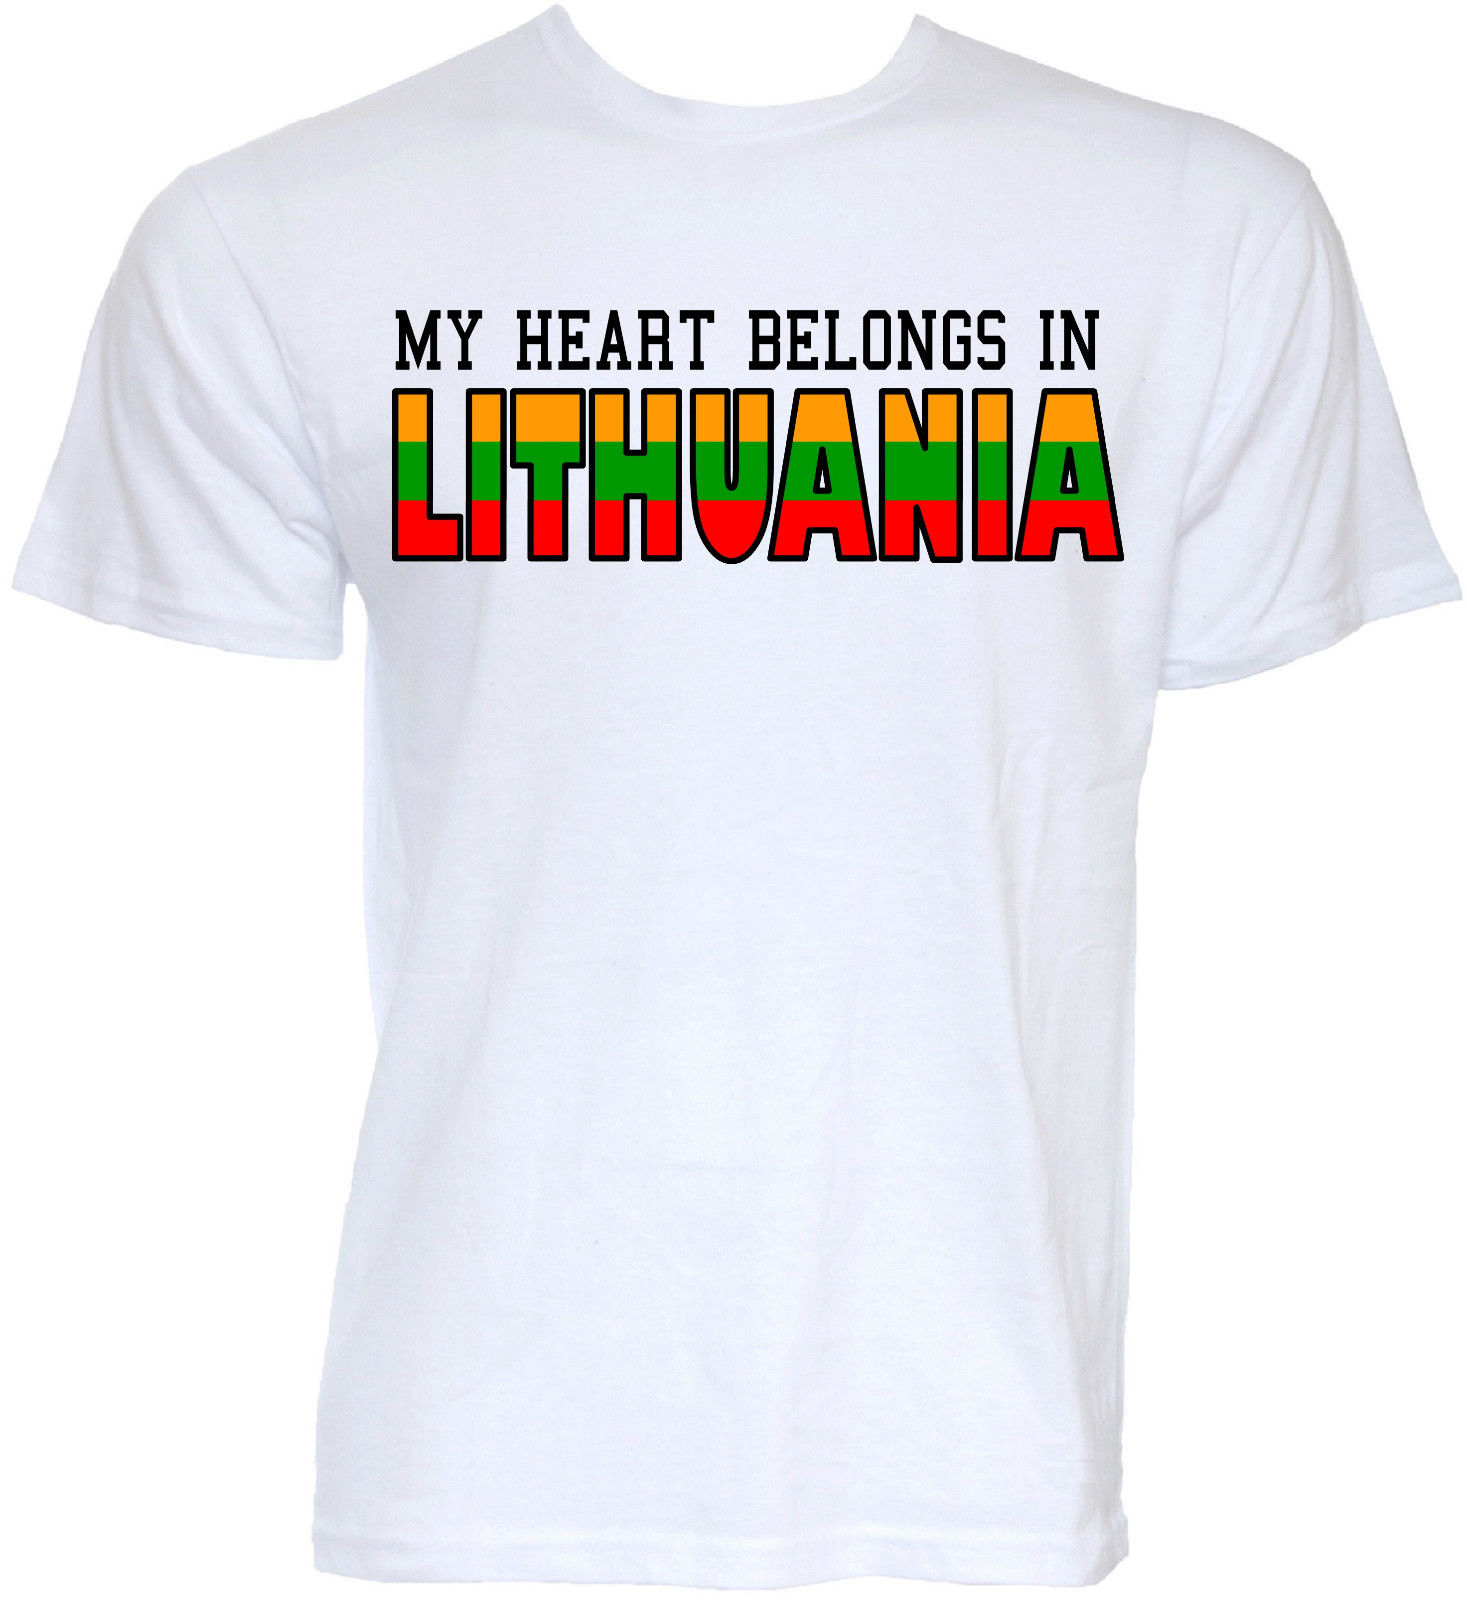 MENS FUNNY COOL NOVELTY LITHUANIAN LITHUANIA JOKE FLAG SLOGAN T-SHIRTS FUN GIFTS 2017 Fashion Short Sleeve Black T Shirt